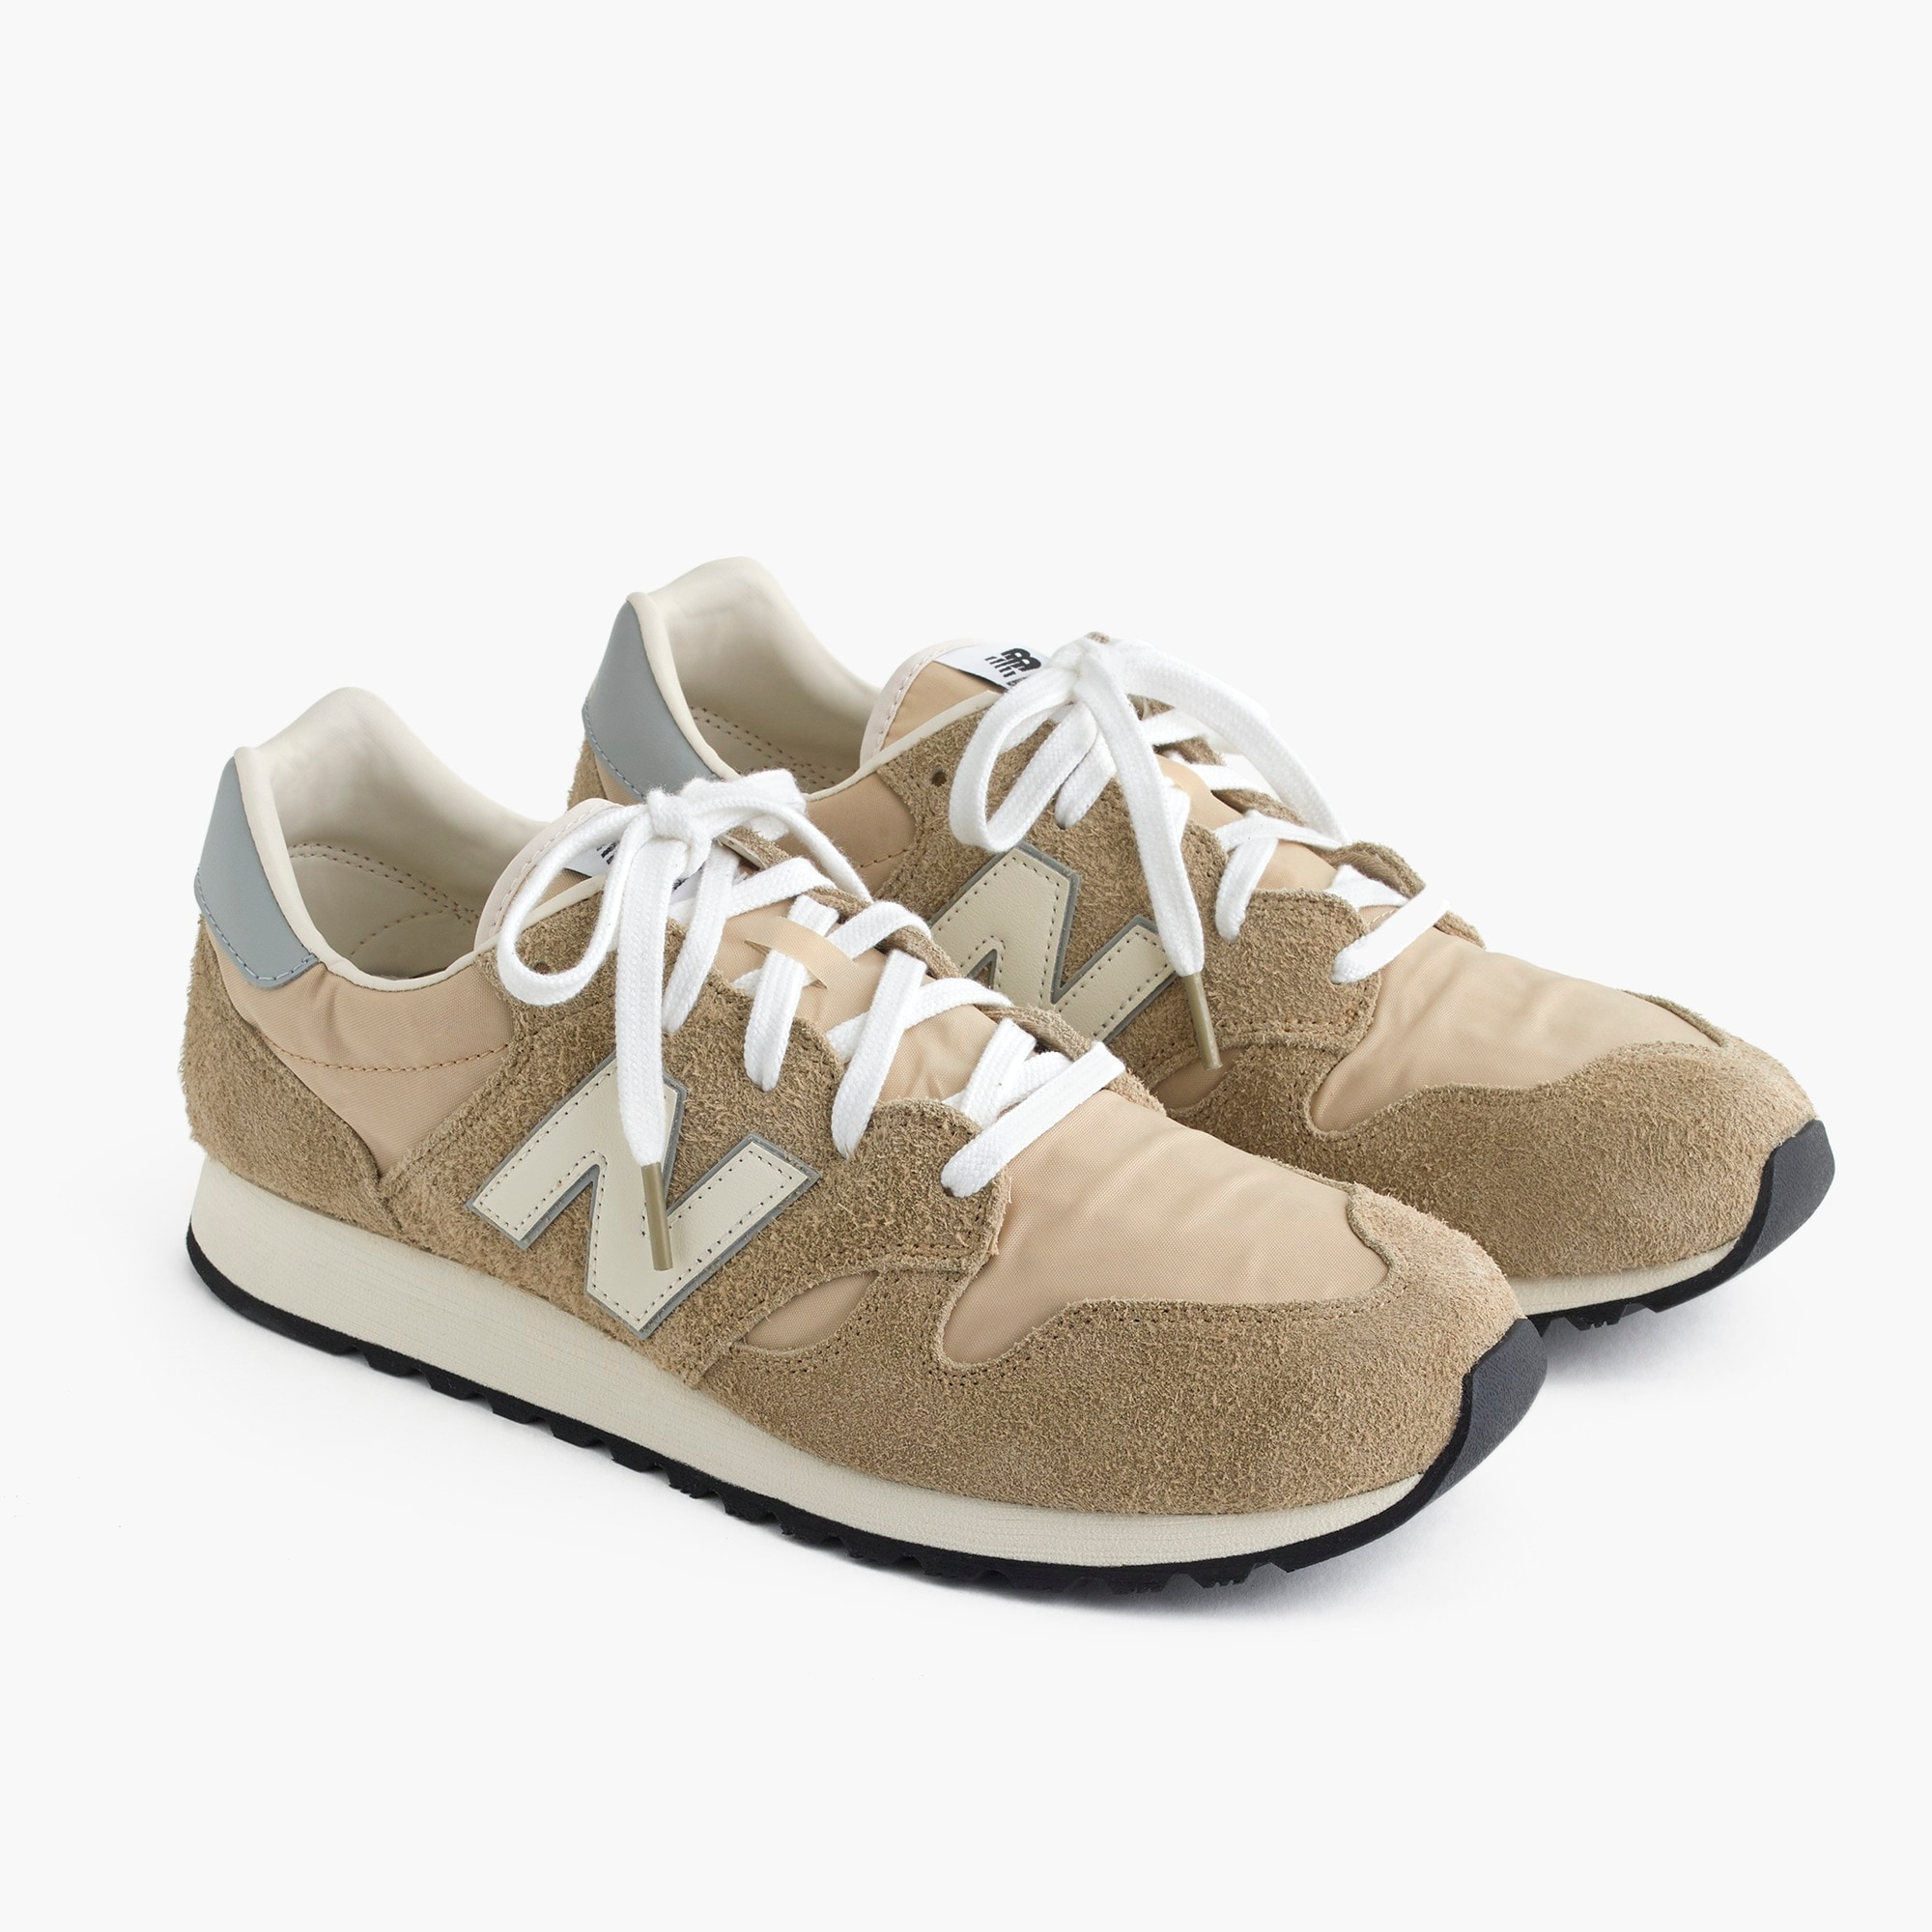 mens New Balance® for J.Crew 520 sneakers in hairy suede